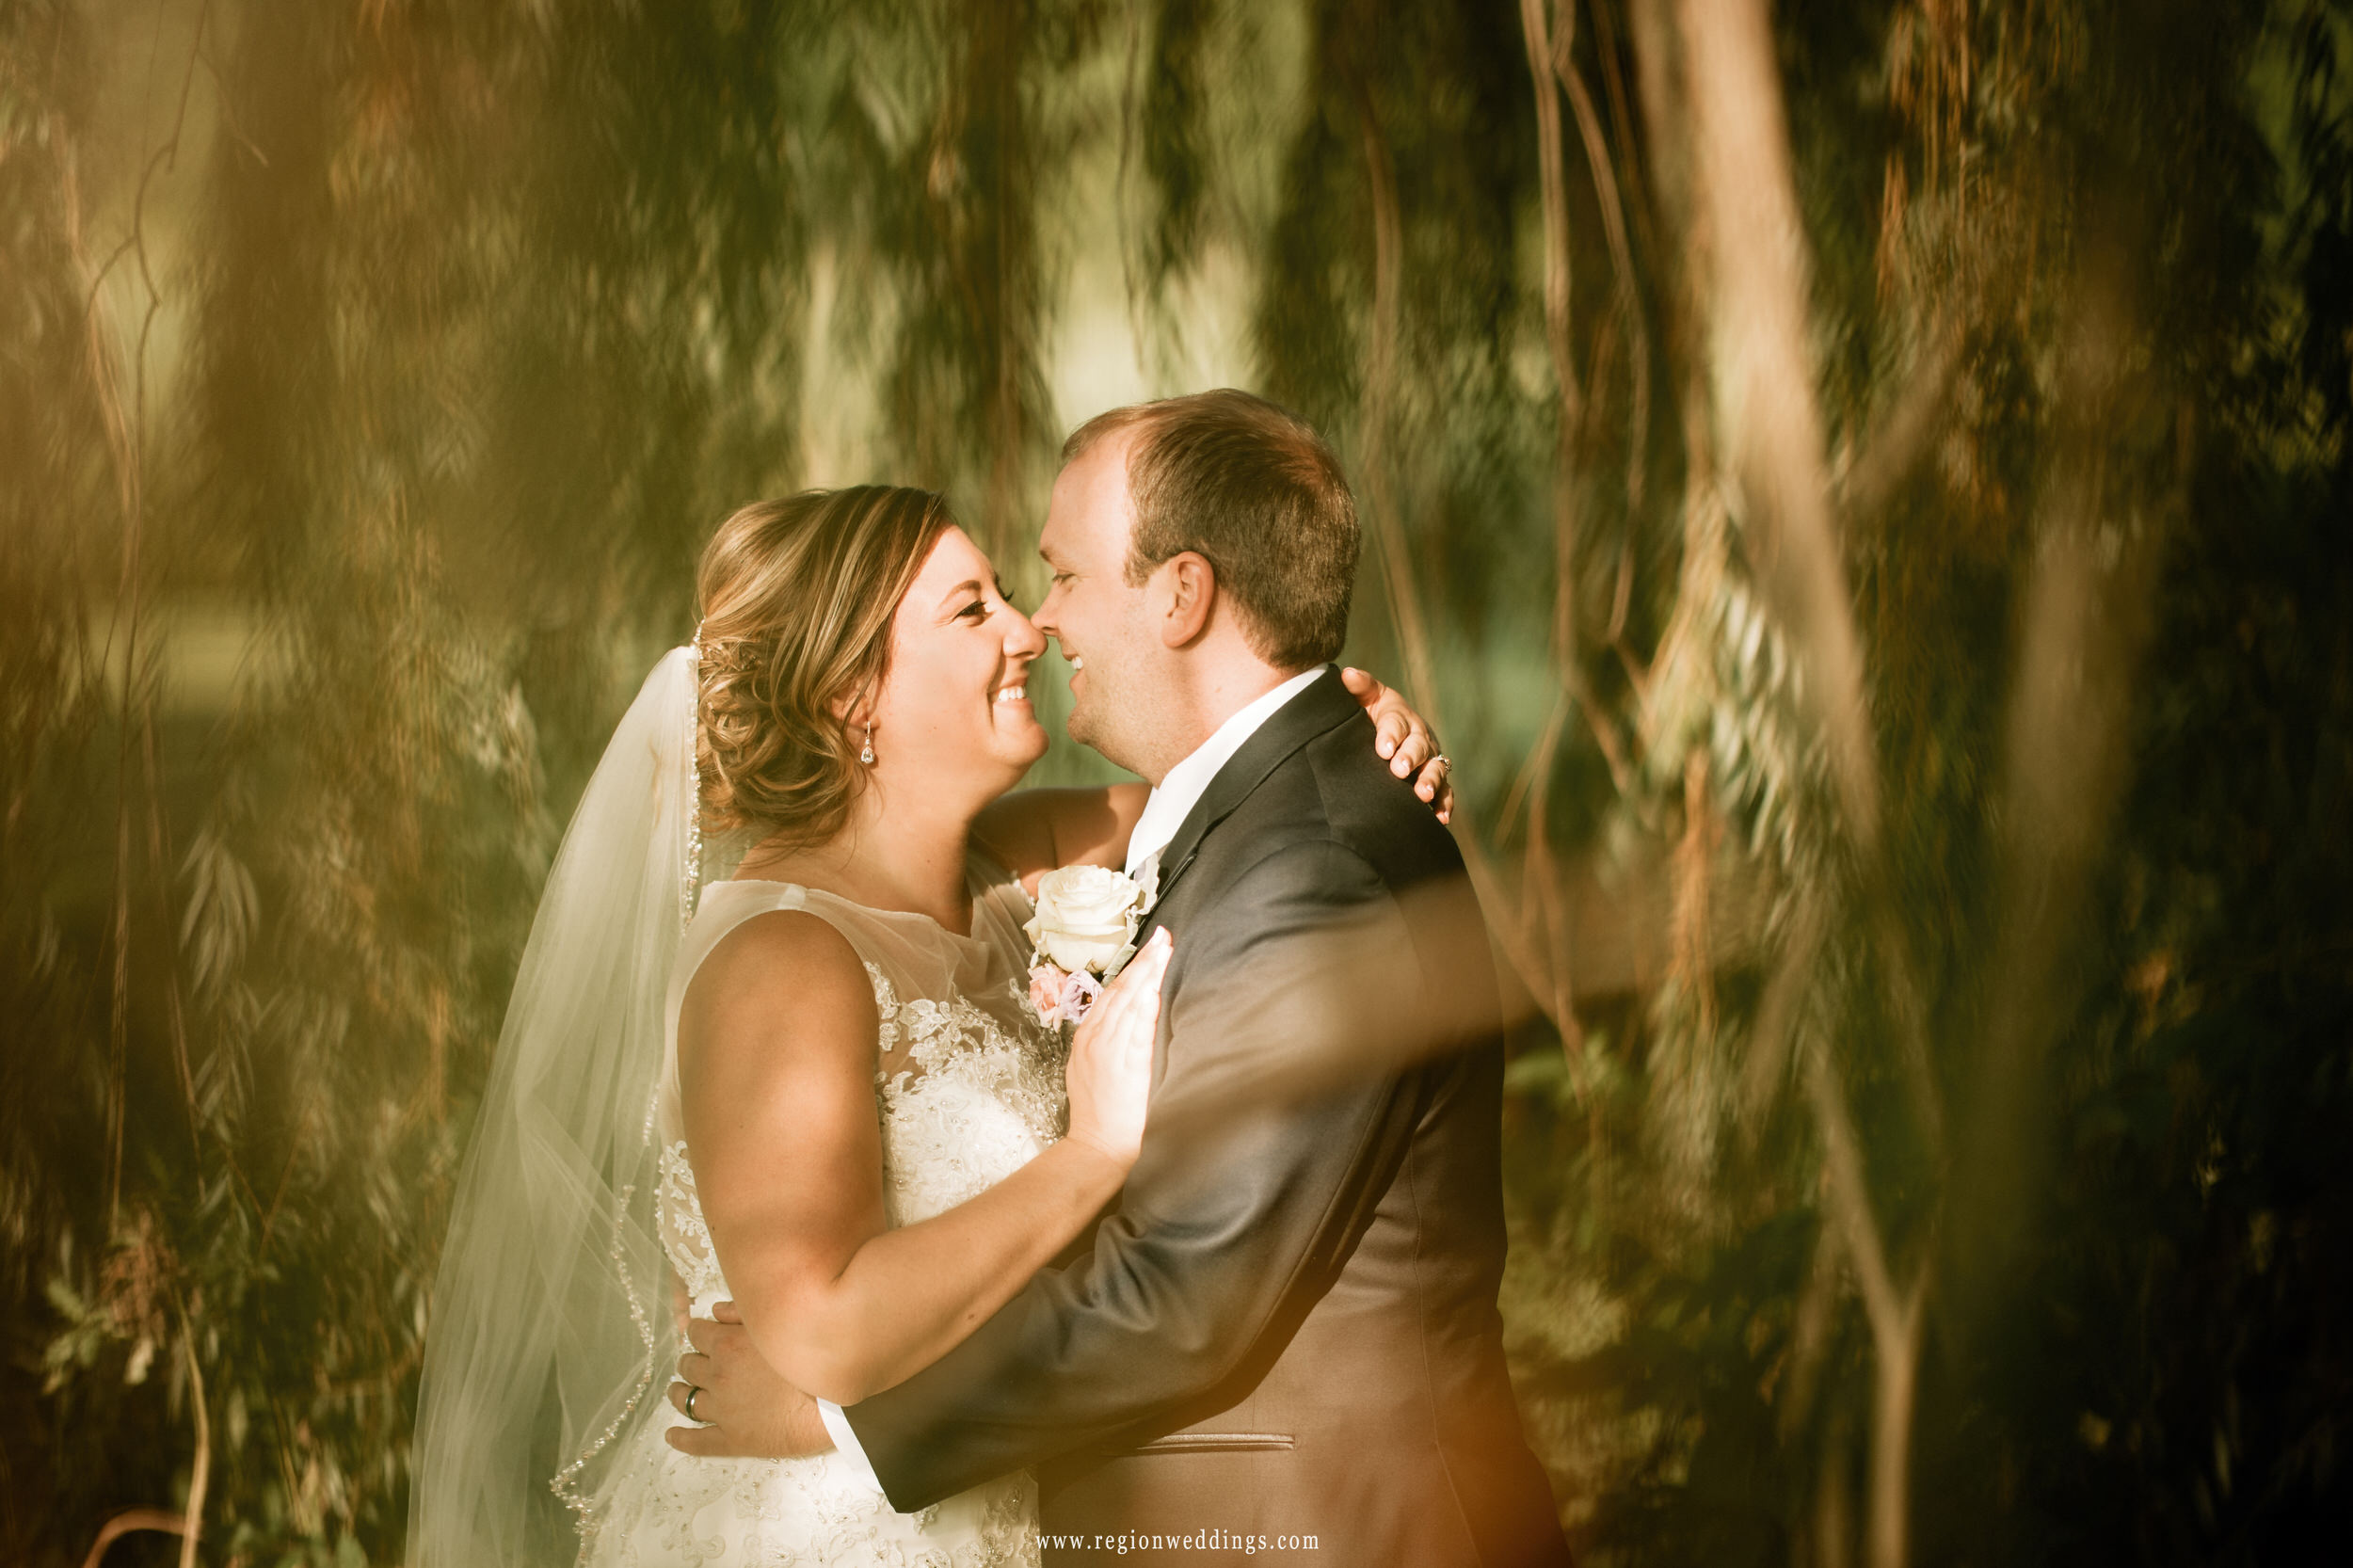 Newlyweds snuggle at the base of a weeping willow tree at Sand Creek Country Club.